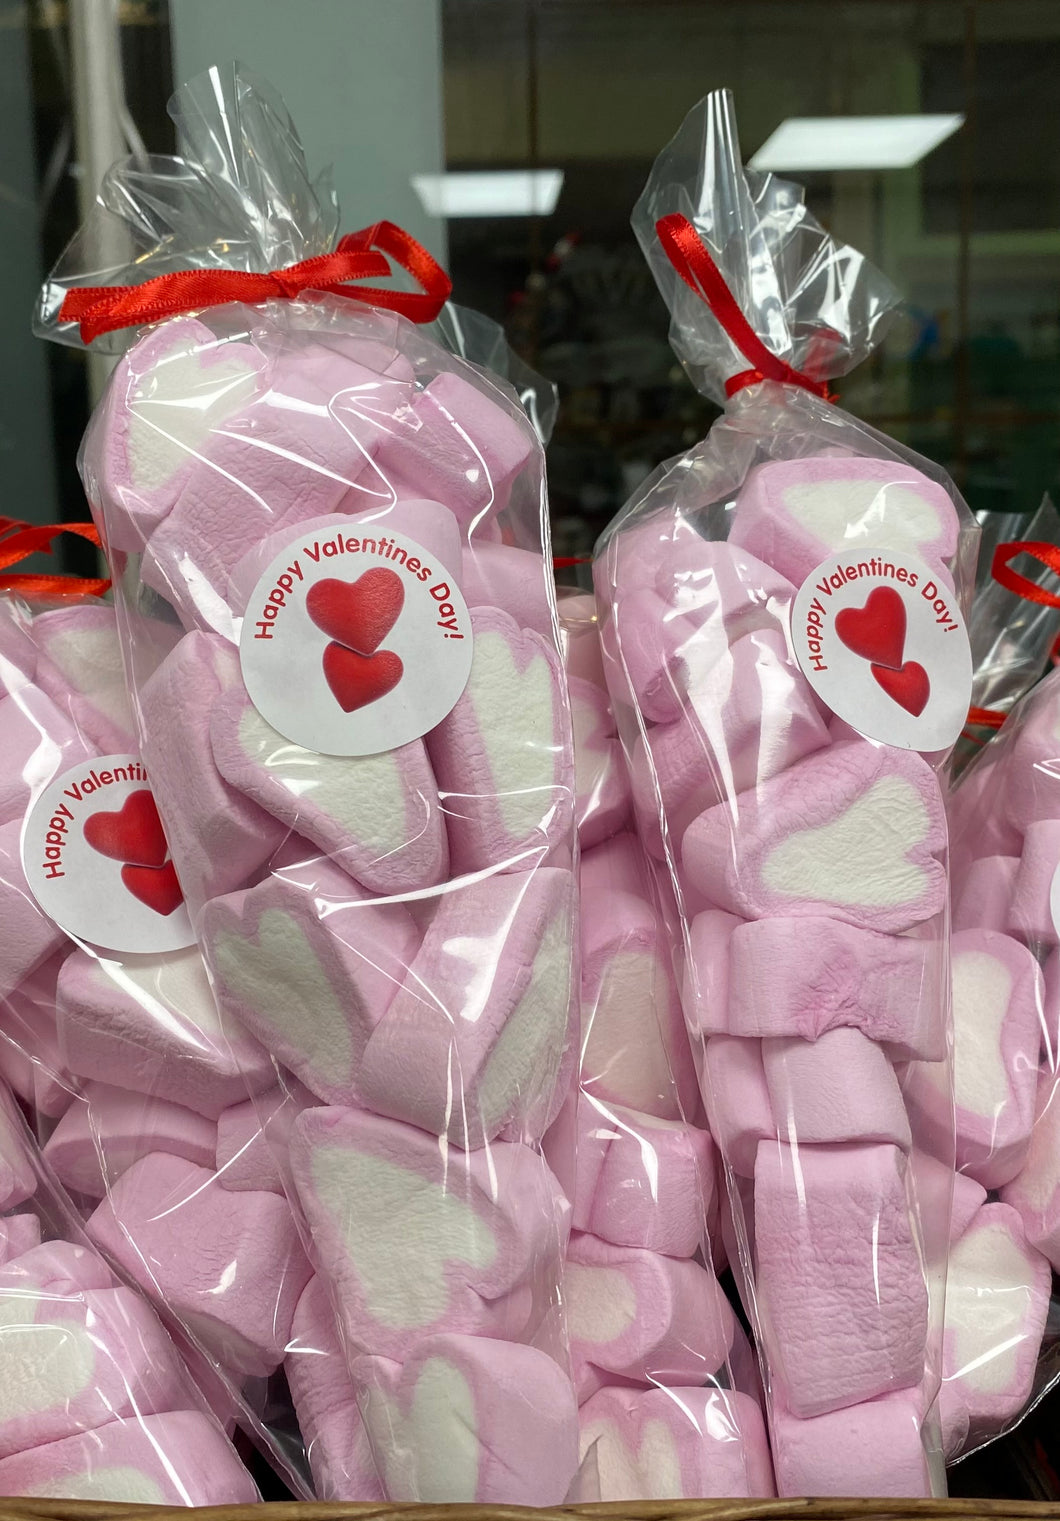 Sweet cone of heart marshmallows (Valentine's gift)(flumps)